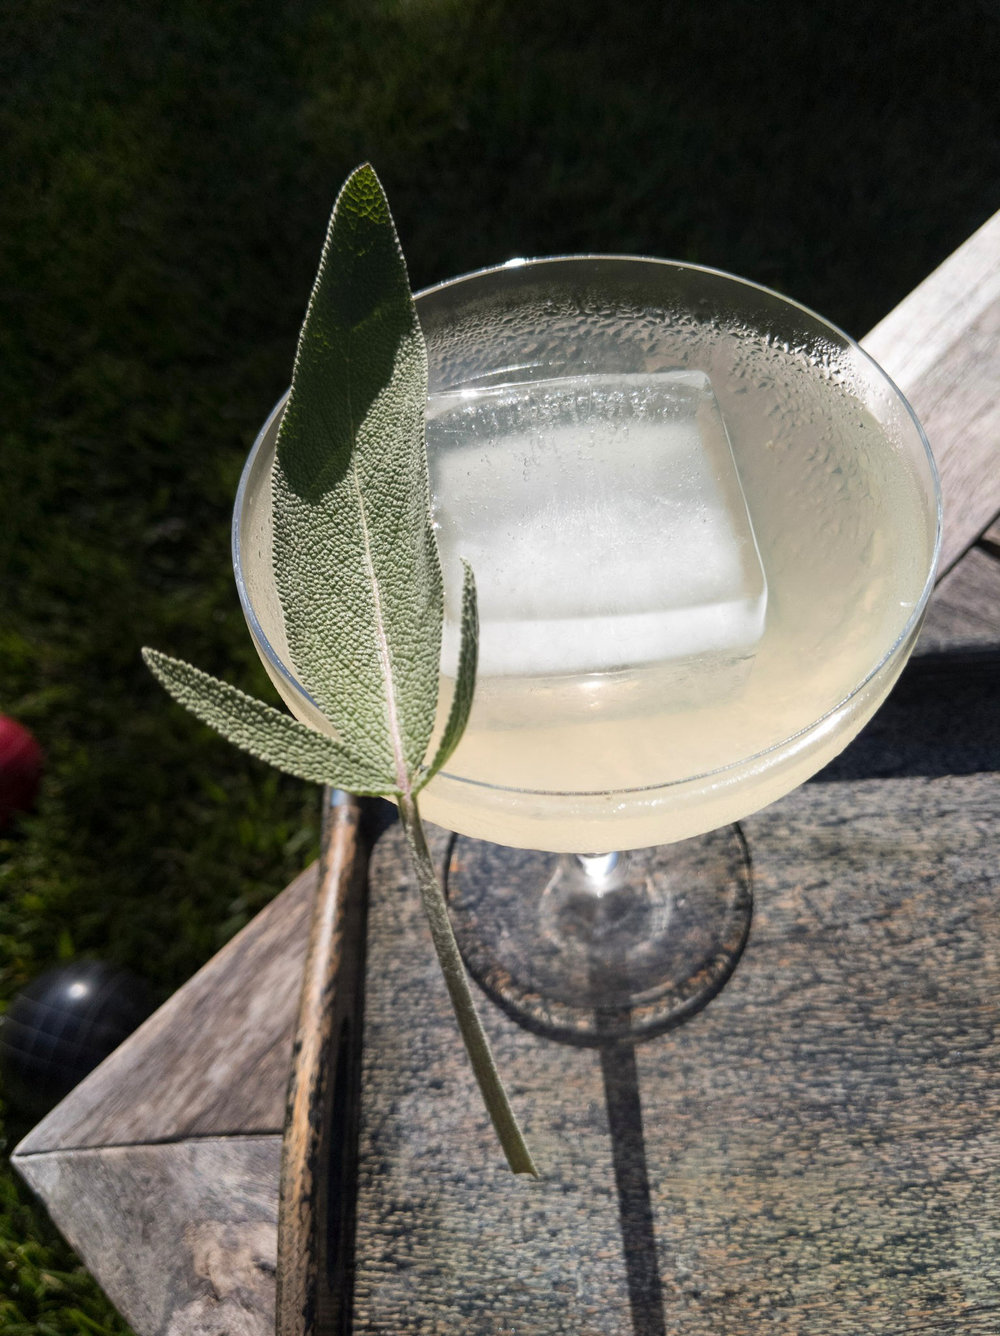 TRAILHEAD - 2 oz Dr. Zzyzx Sage Vodka1 oz fresh squeezed lemon1 oz simple syrupShake with ice & strain